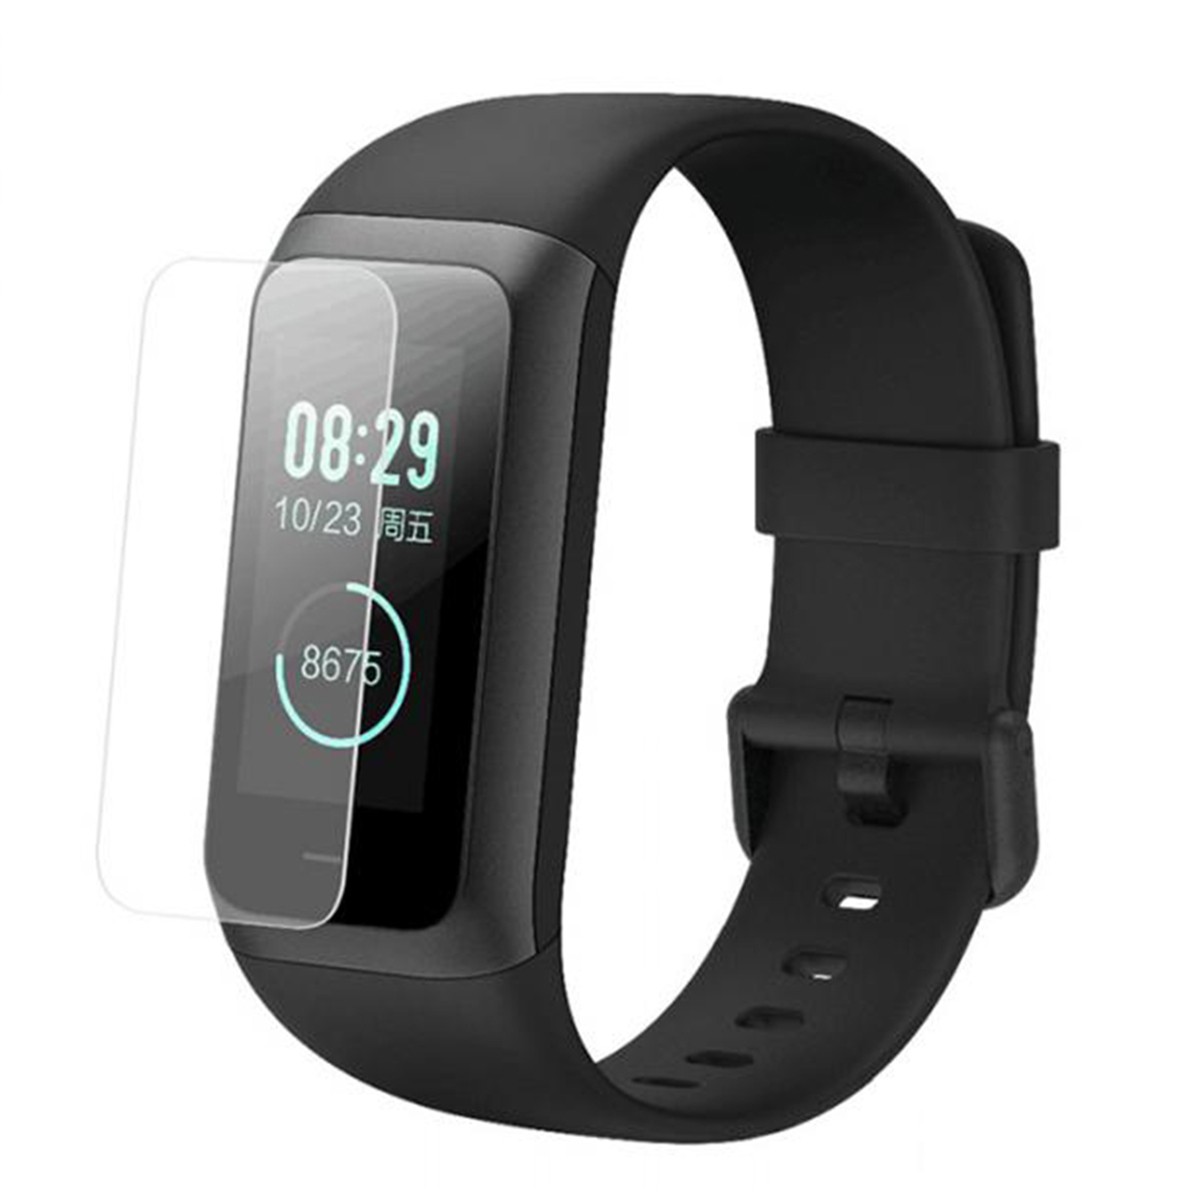 2pcs Soft TPU Screen Protector Explosion Proof Anti Scratch Screen Cover Films For <font><b>Huami</b></font> <font><b>Amazfit</b></font> <font><b>Cor</b></font> <font><b>2</b></font> Fitness Smart Bracelet image